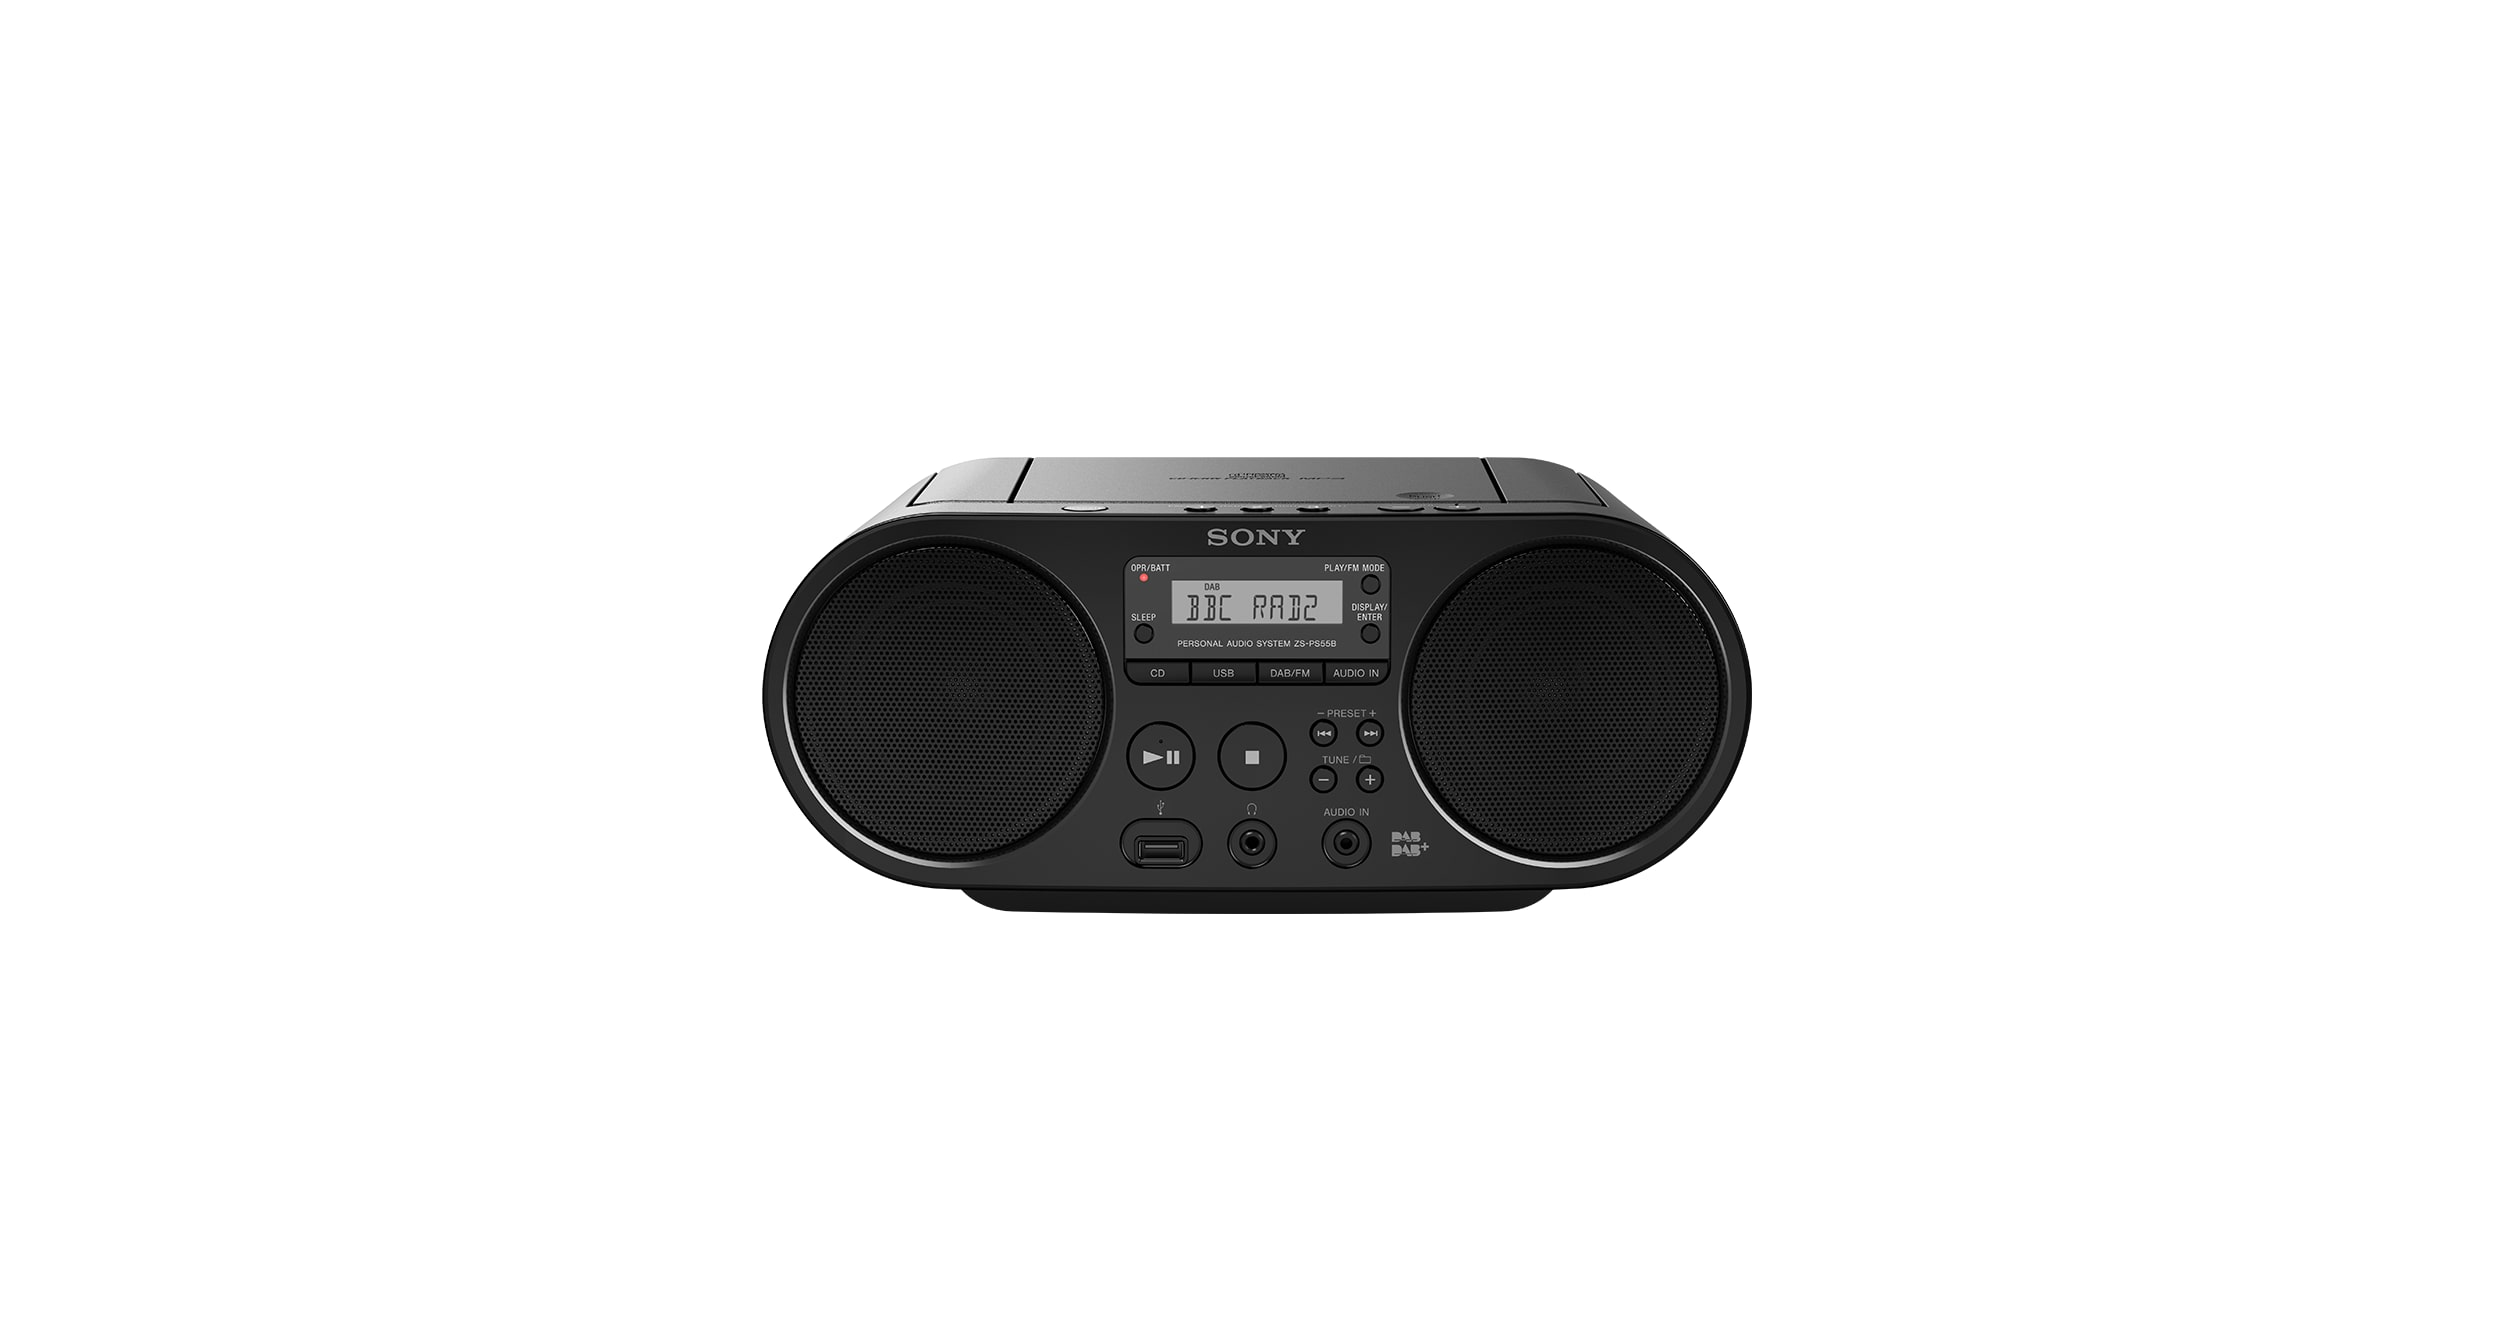 cd player tragbar mit radio zs ps55b sony de. Black Bedroom Furniture Sets. Home Design Ideas